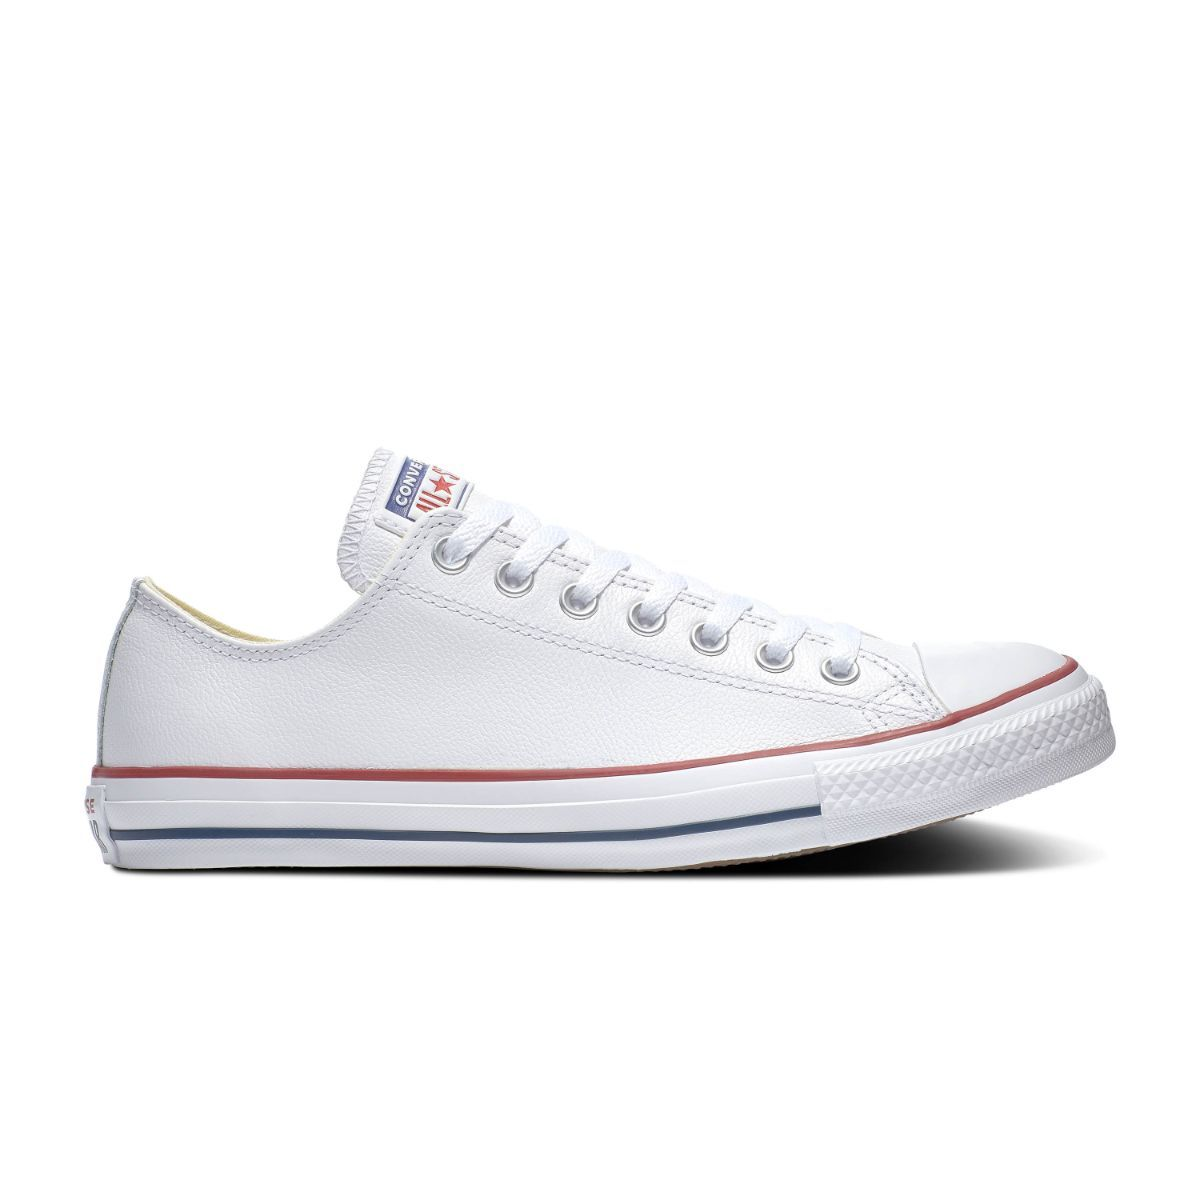 Converse All Star Chuck Taylor Leather White Low Top